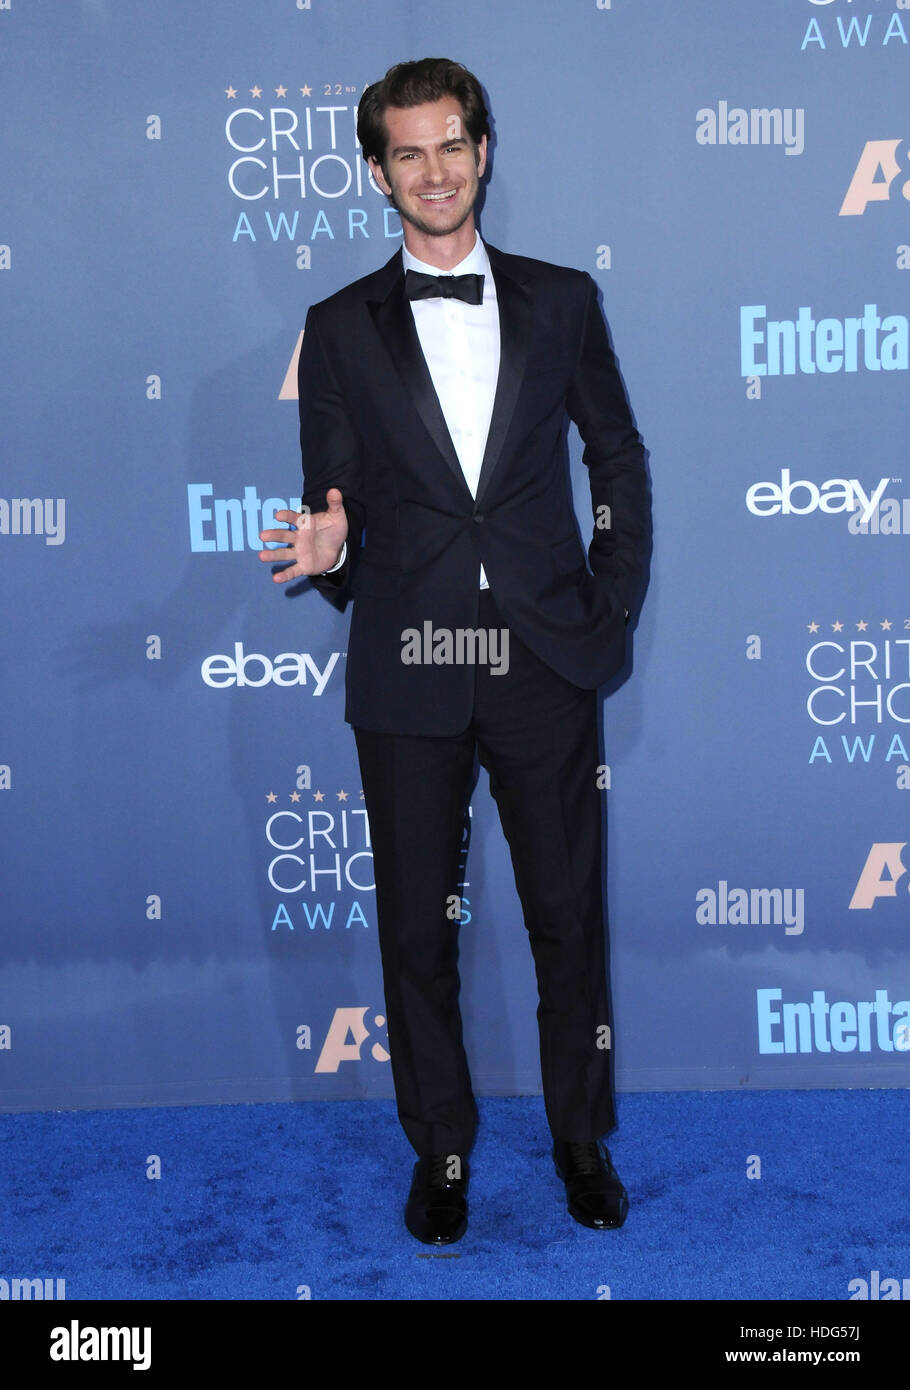 Santa Monica, Kalifornien, USA. 11. Dezember 2016. Andrew Garfield. 22. Annual Critics' Choice Awards auf Barker Stockbild